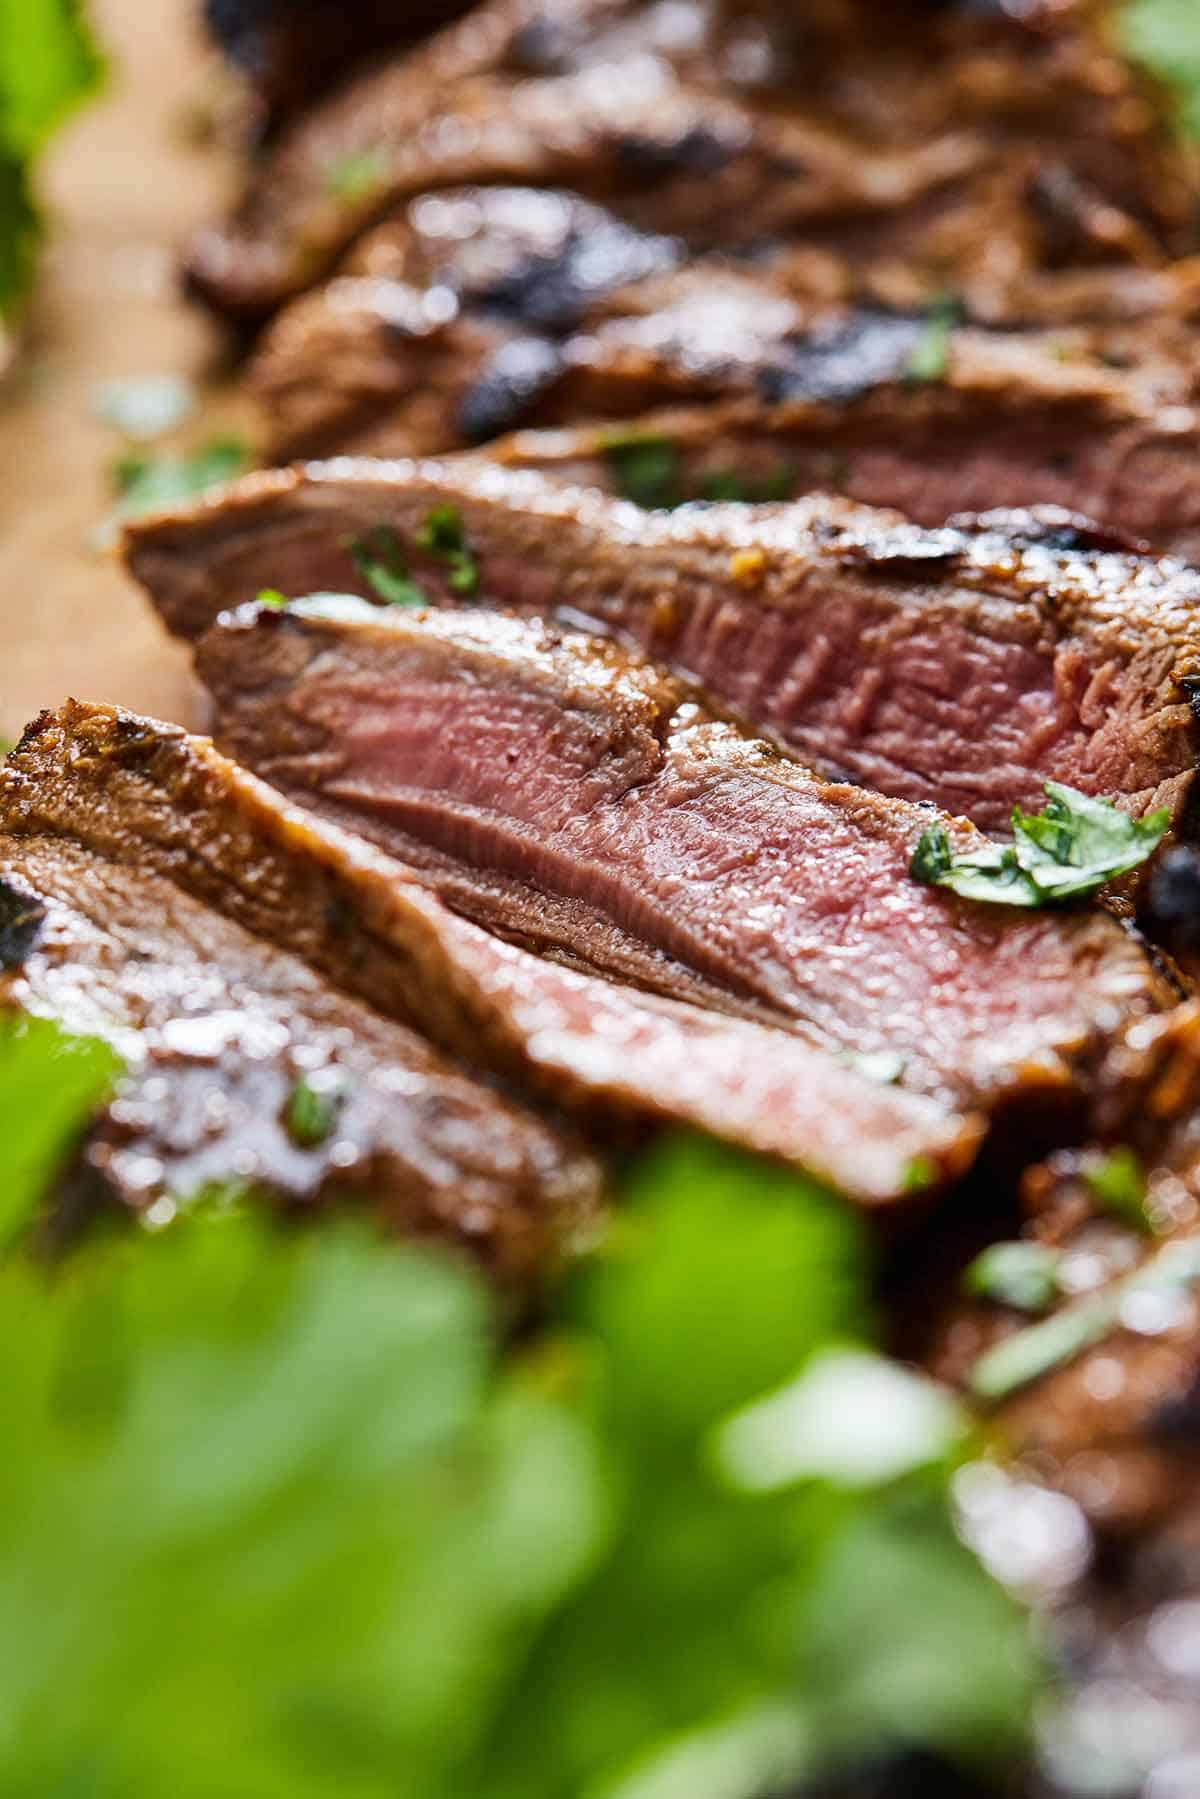 Close up photo of a slice of carne asada in focus, highlighting the piece being medium-rare.